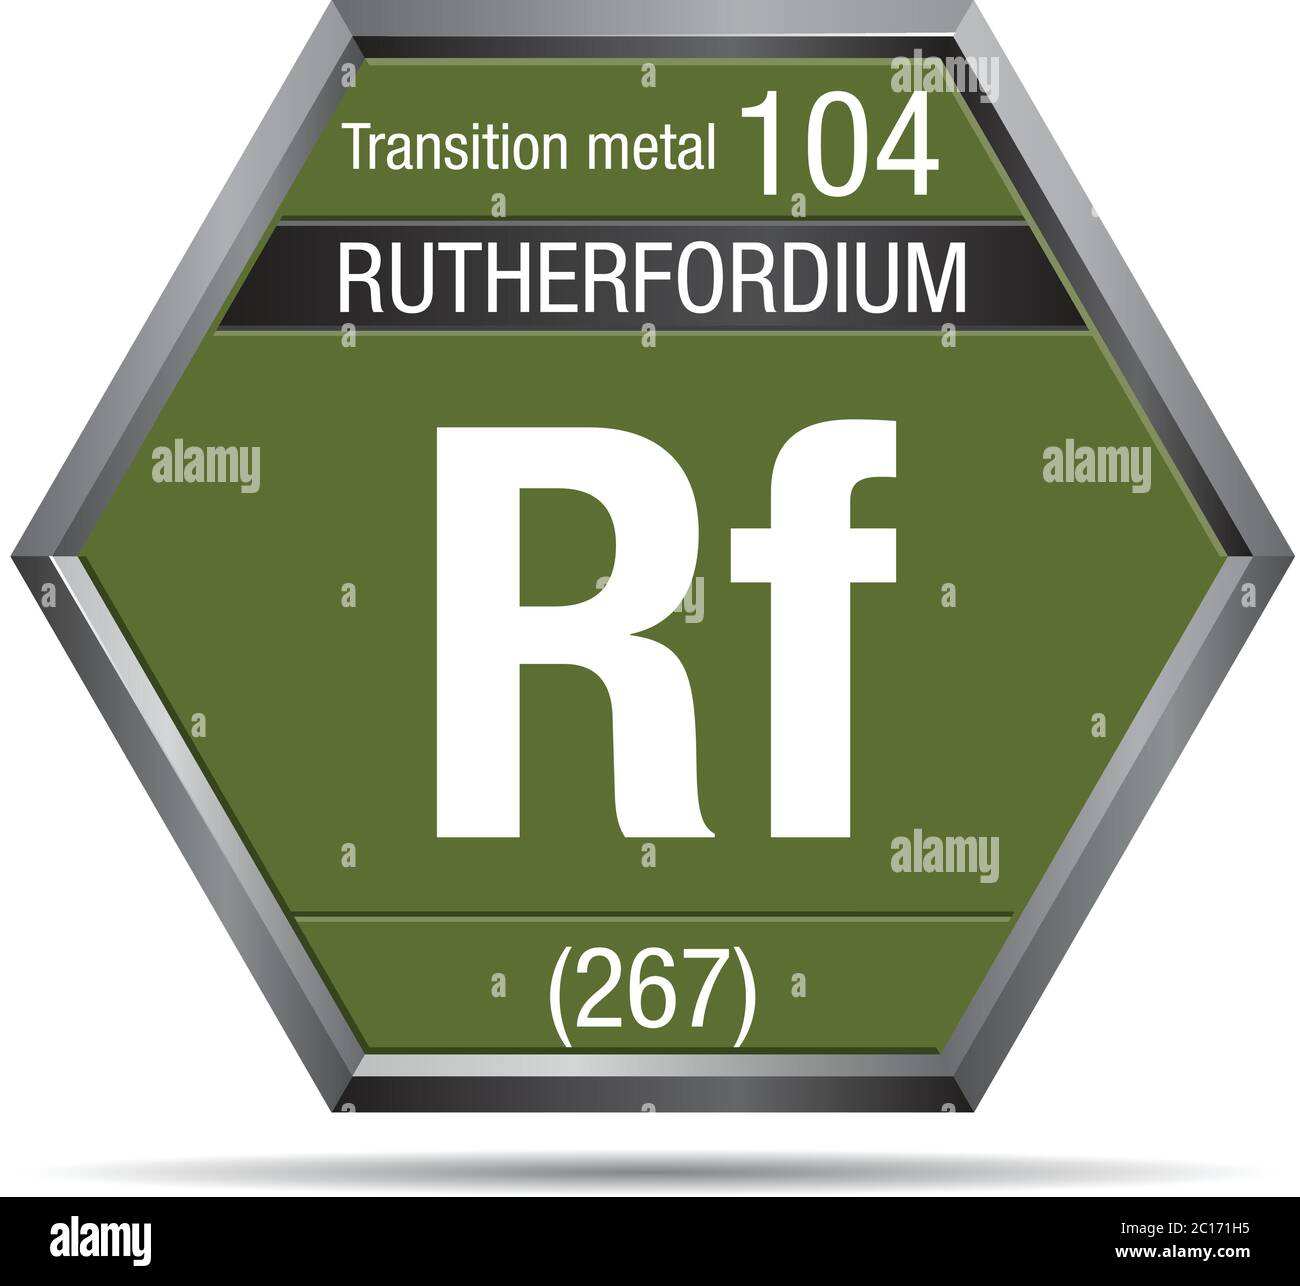 Rutherfordium symbol in the form of a hexagon with a metallic frame. Element number 104 of the Periodic Table of the Elements - Chemistry Stock Vector